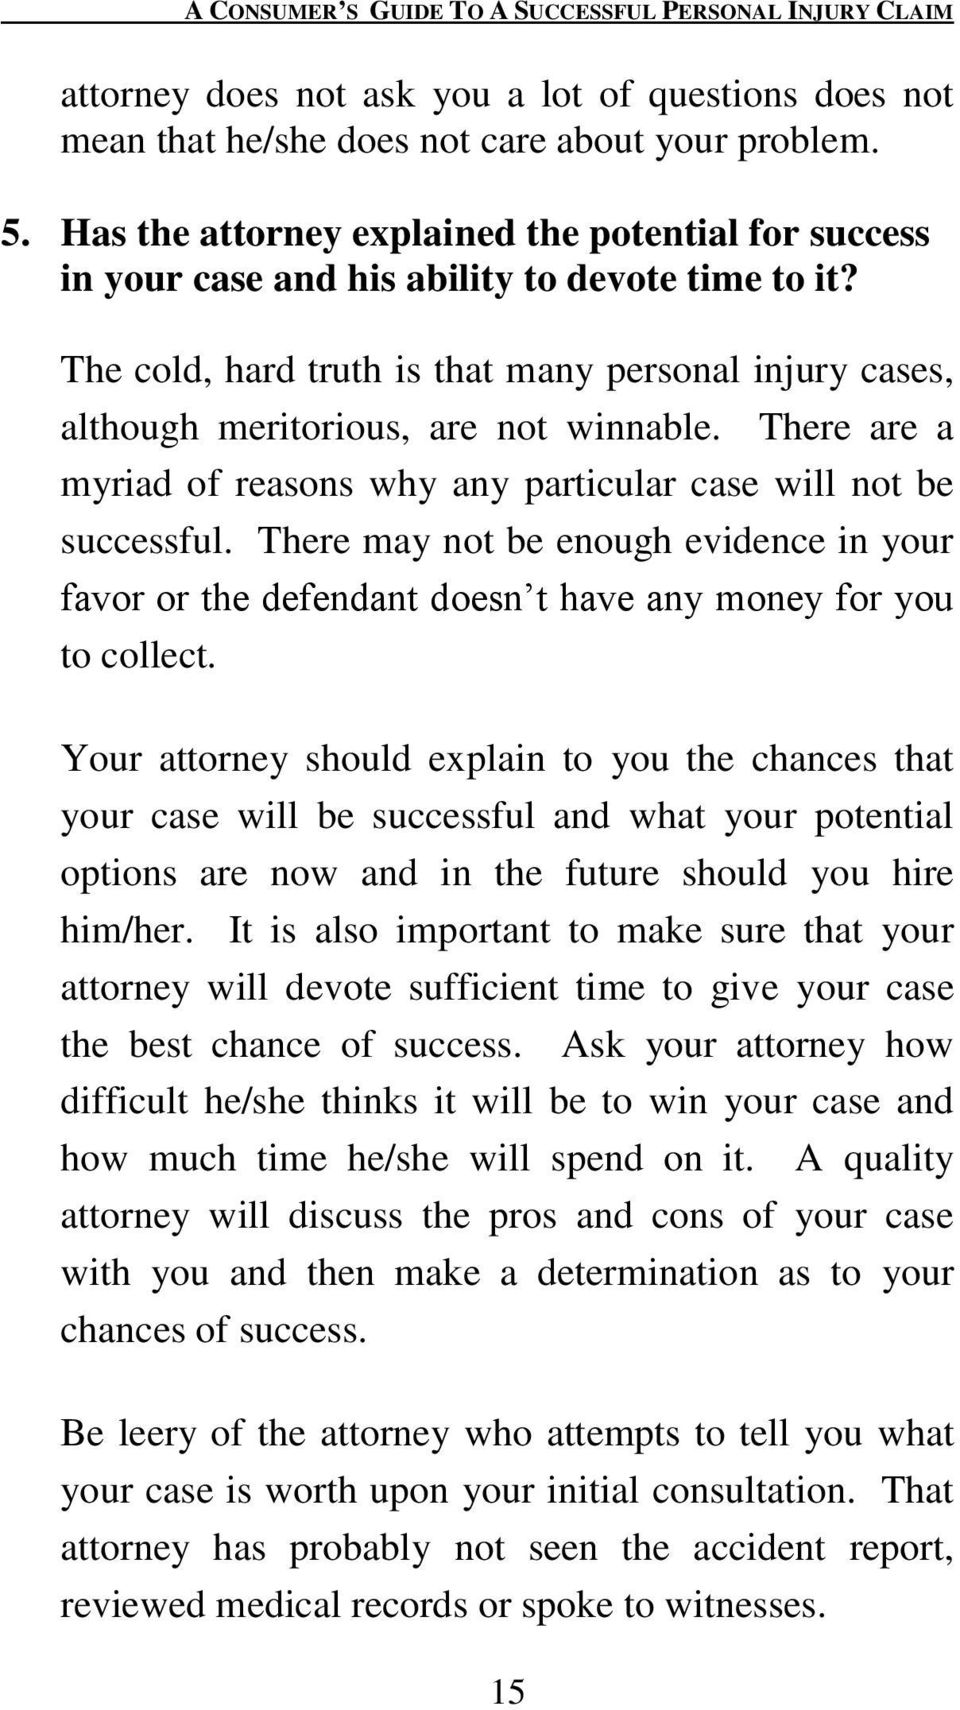 There are a myriad of reasons why any particular case will not be successful. There may not be enough evidence in your favor or the defendant doesn t have any money for you to collect.